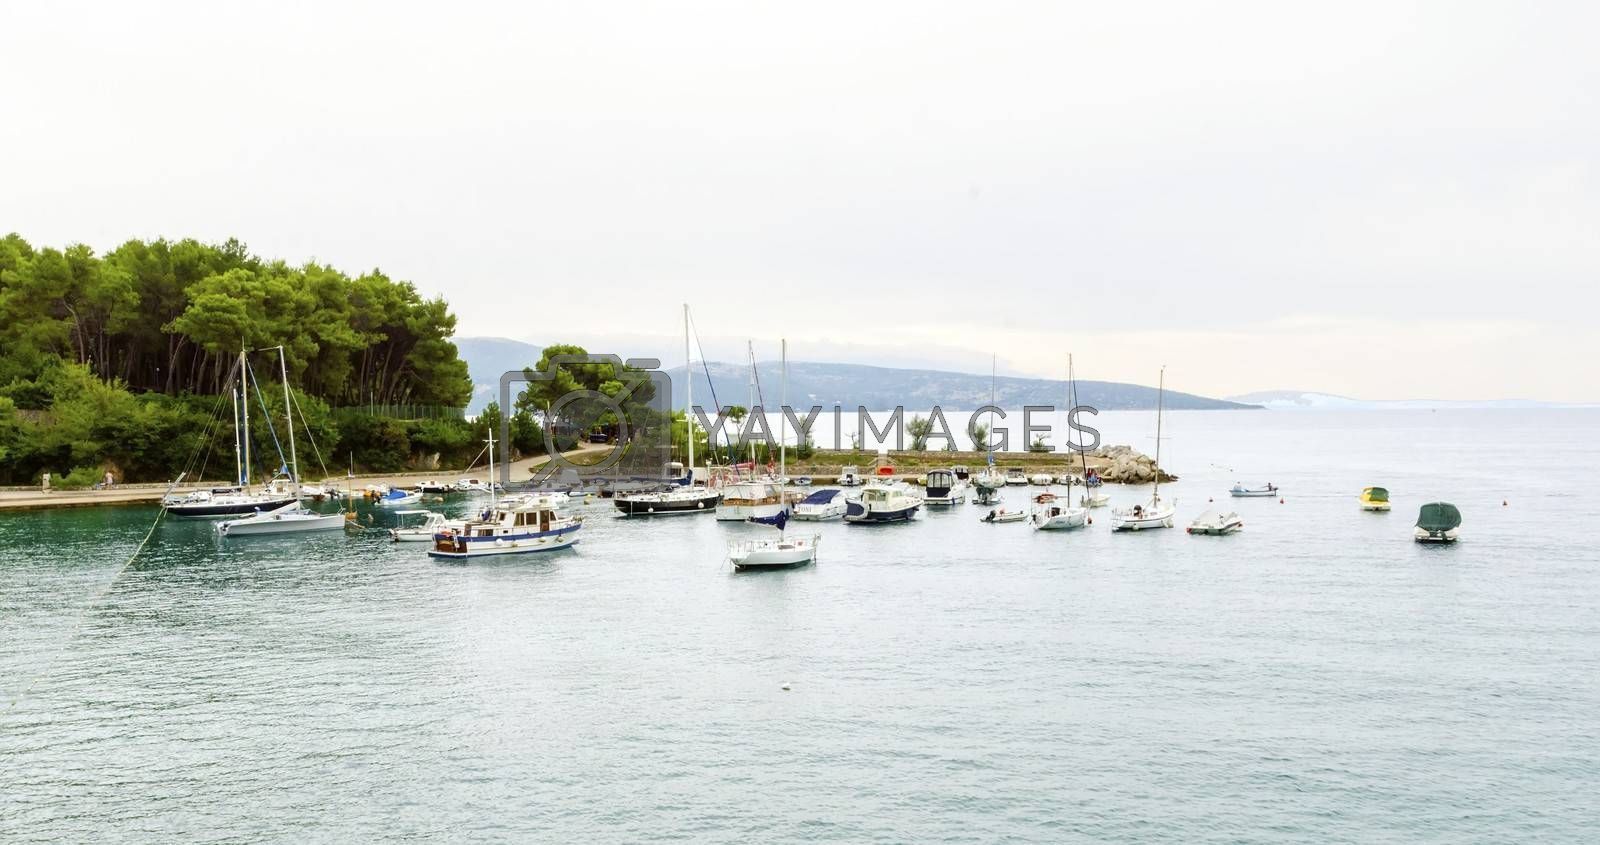 The port on the old town of Krk in Croatia, county Primorje-Gorski Kotar. A view of the Adriatic sea, boats docked, the coast of the island Veglia and part of the city walls.